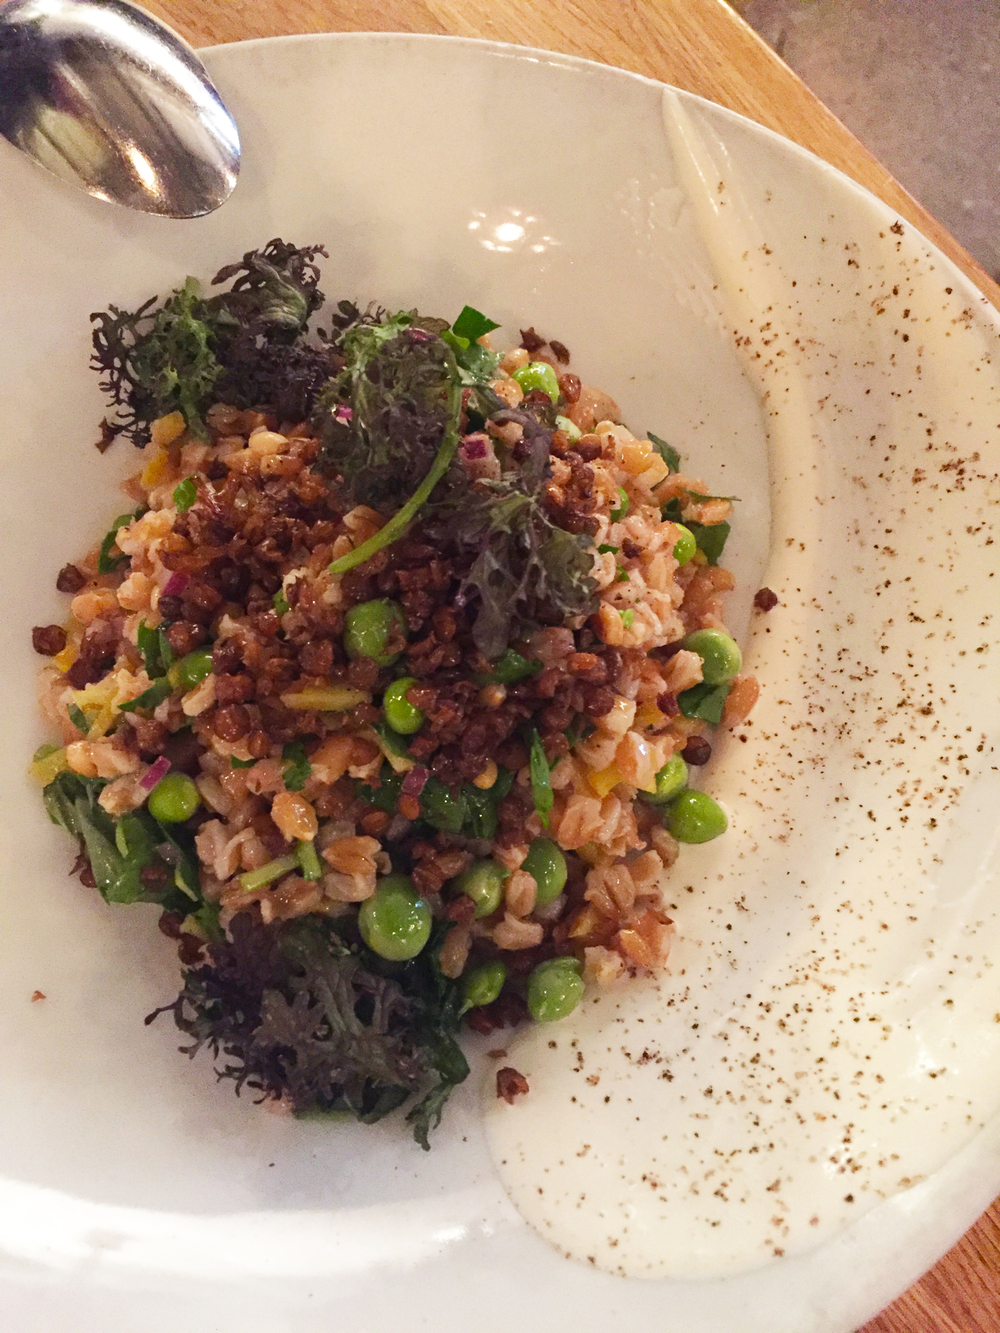 Farro Salad with crème fraîche, English peas, pine nuts, pickled sunchokes, fried lentils, and herbs.